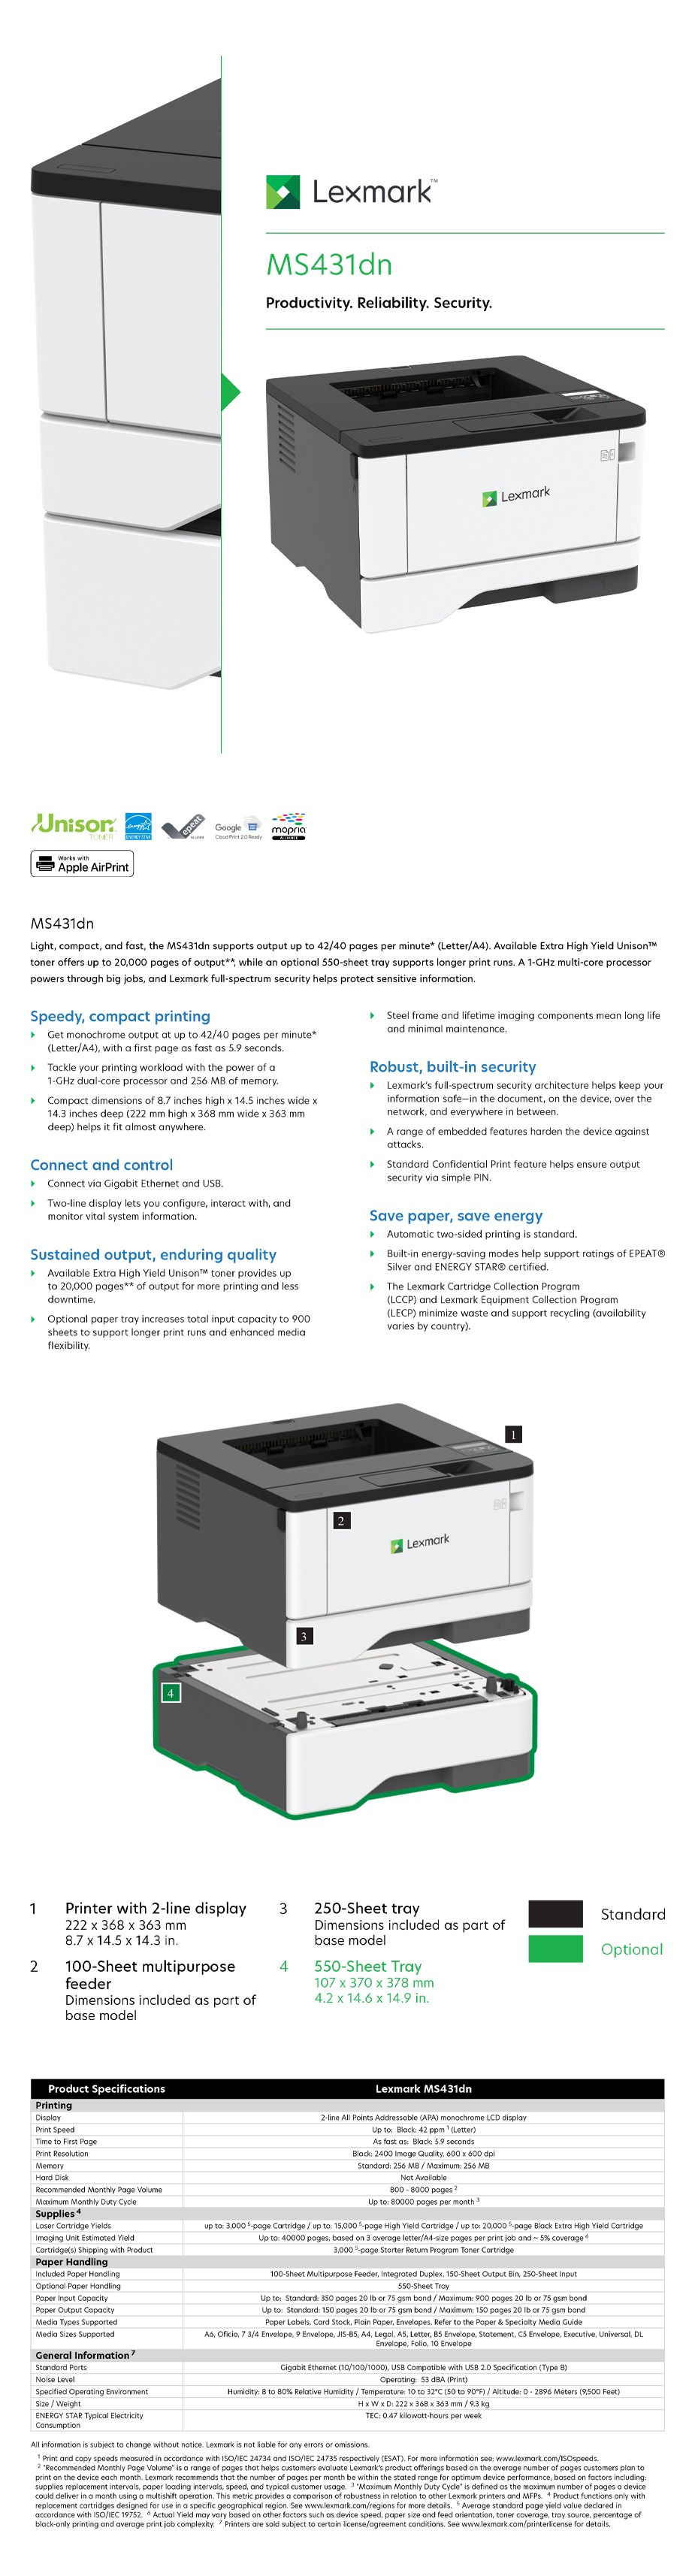 Lexmark MS431dn A4 Monochrome Laser Printer - Overview 1